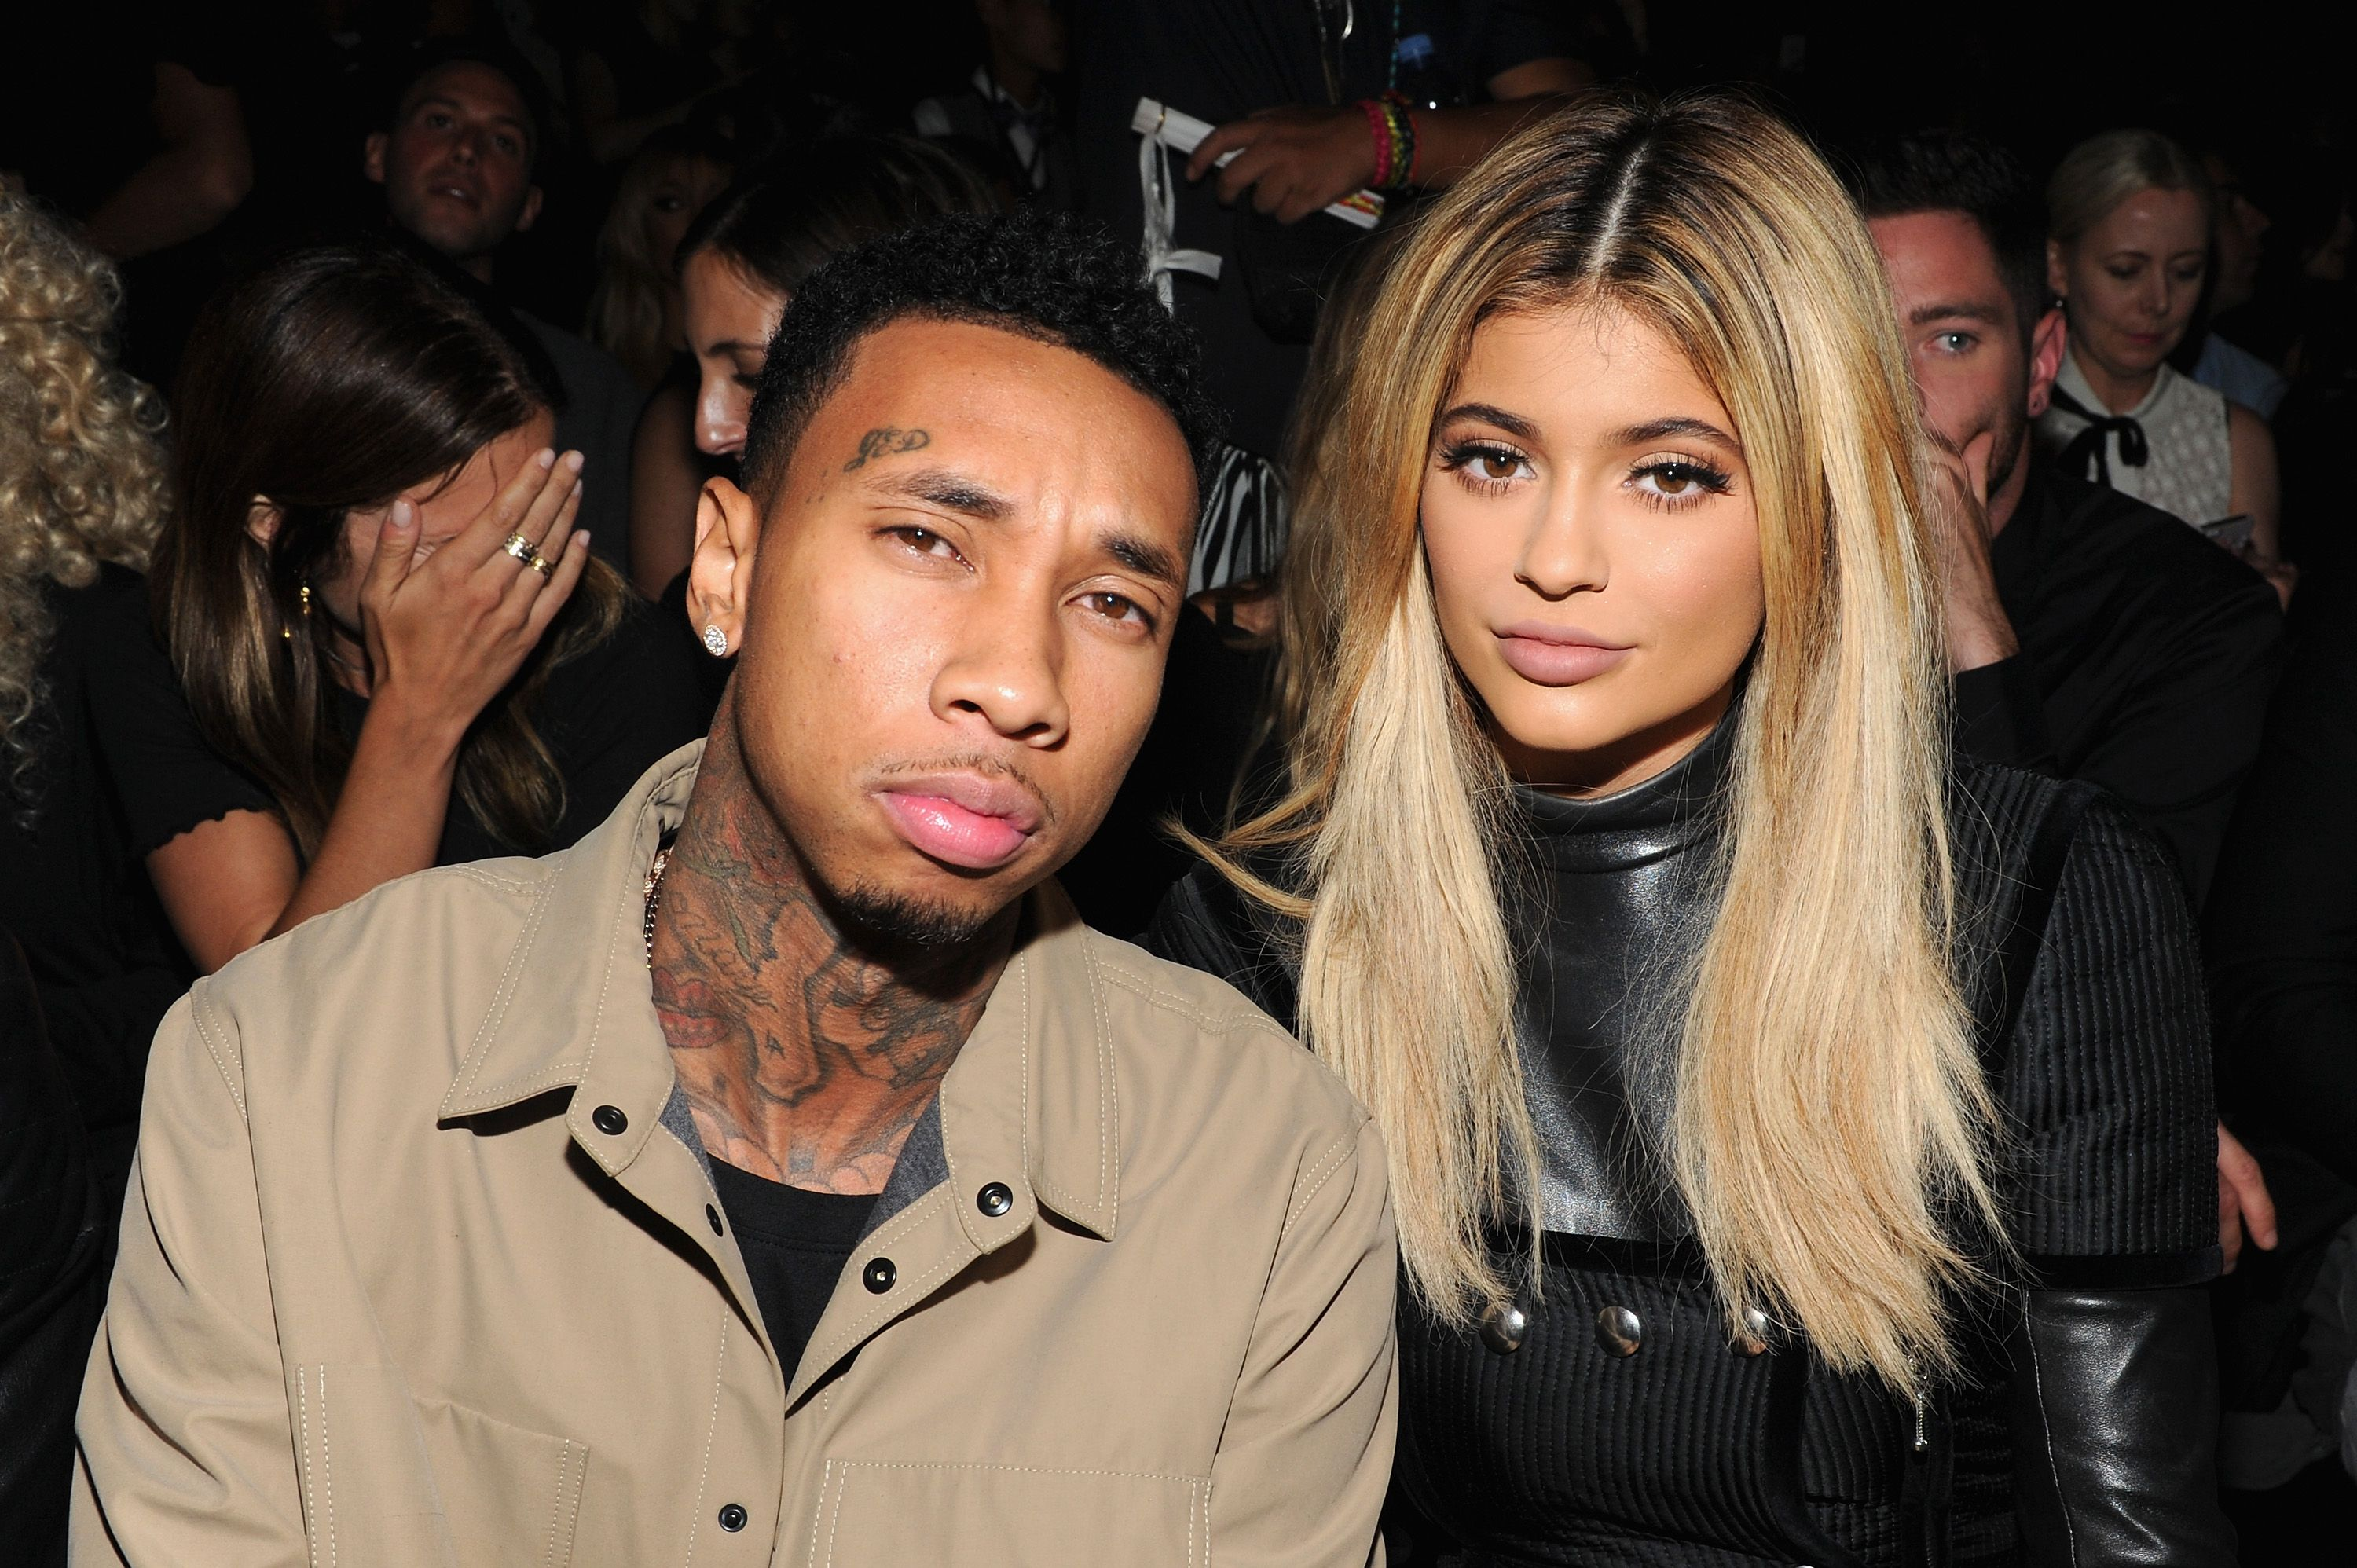 Are tyga and kylie jenner dating 2019